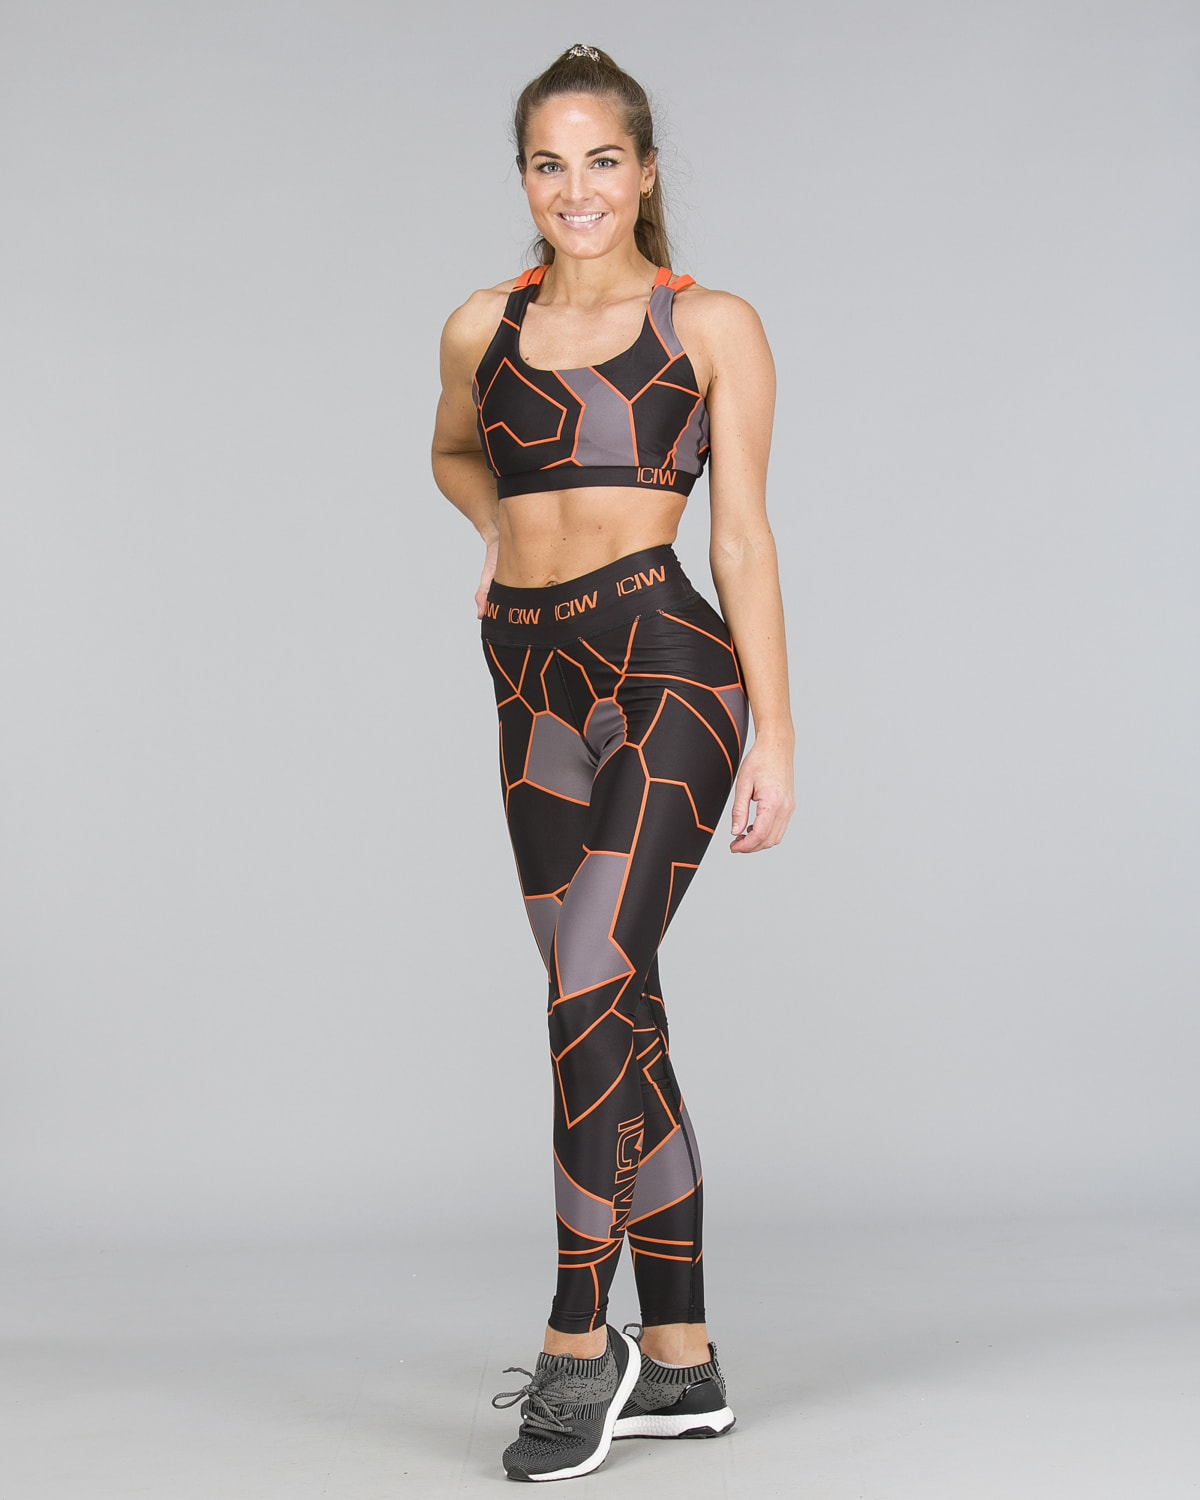 ICANIWILL – Orange Camo Tights c